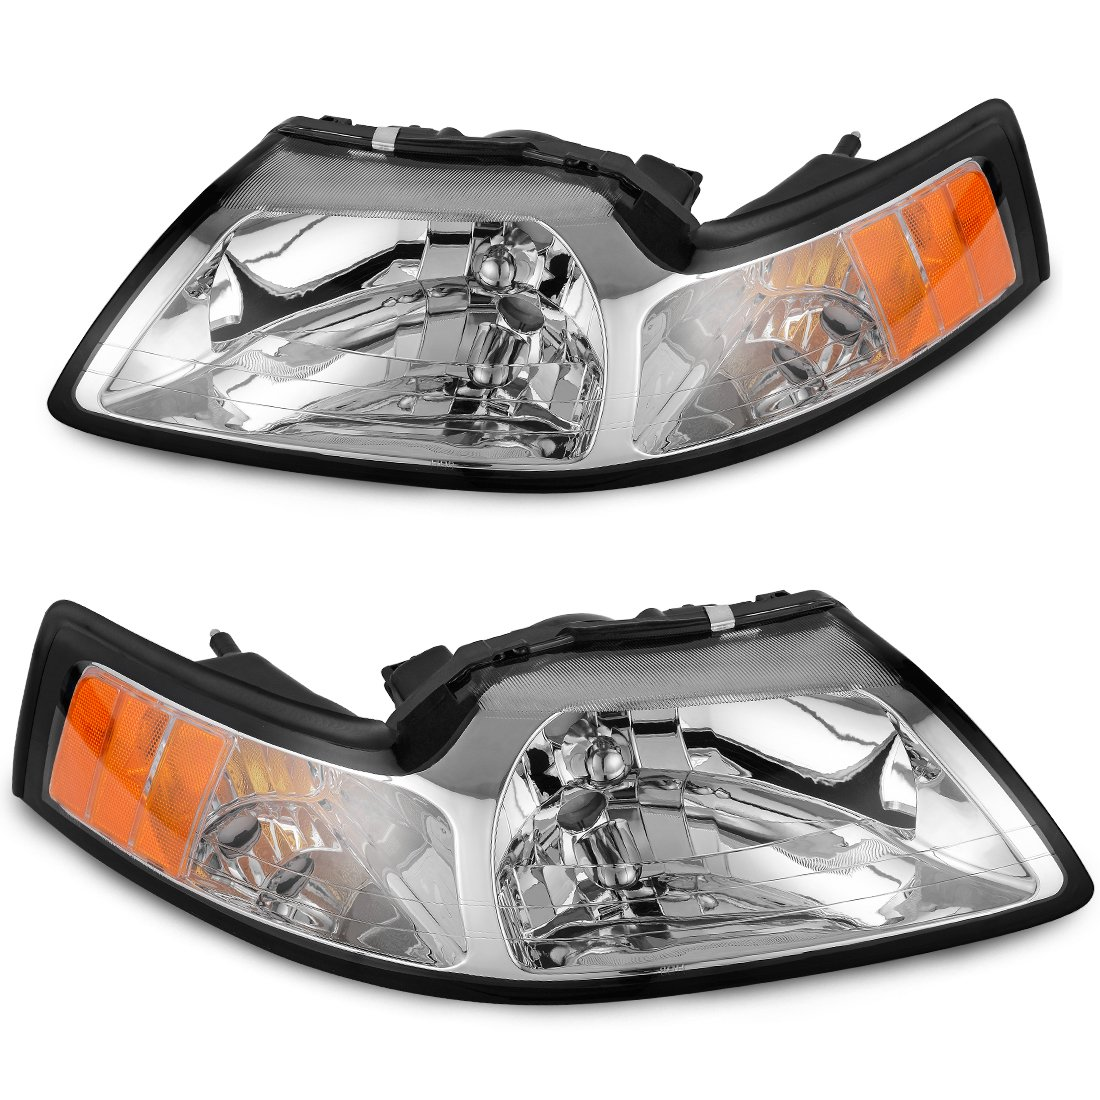 Headlamp for 99-04 Ford Mustang Replacement Headlight Assembly kit, [Hight Clarity & Hight Brightness] Black Housing Clear Lens Driving Light, 2 Year Warranty (99-04 Ford Mustang) Pair AUTOSAVER88 Ford Mustang 1999-2004